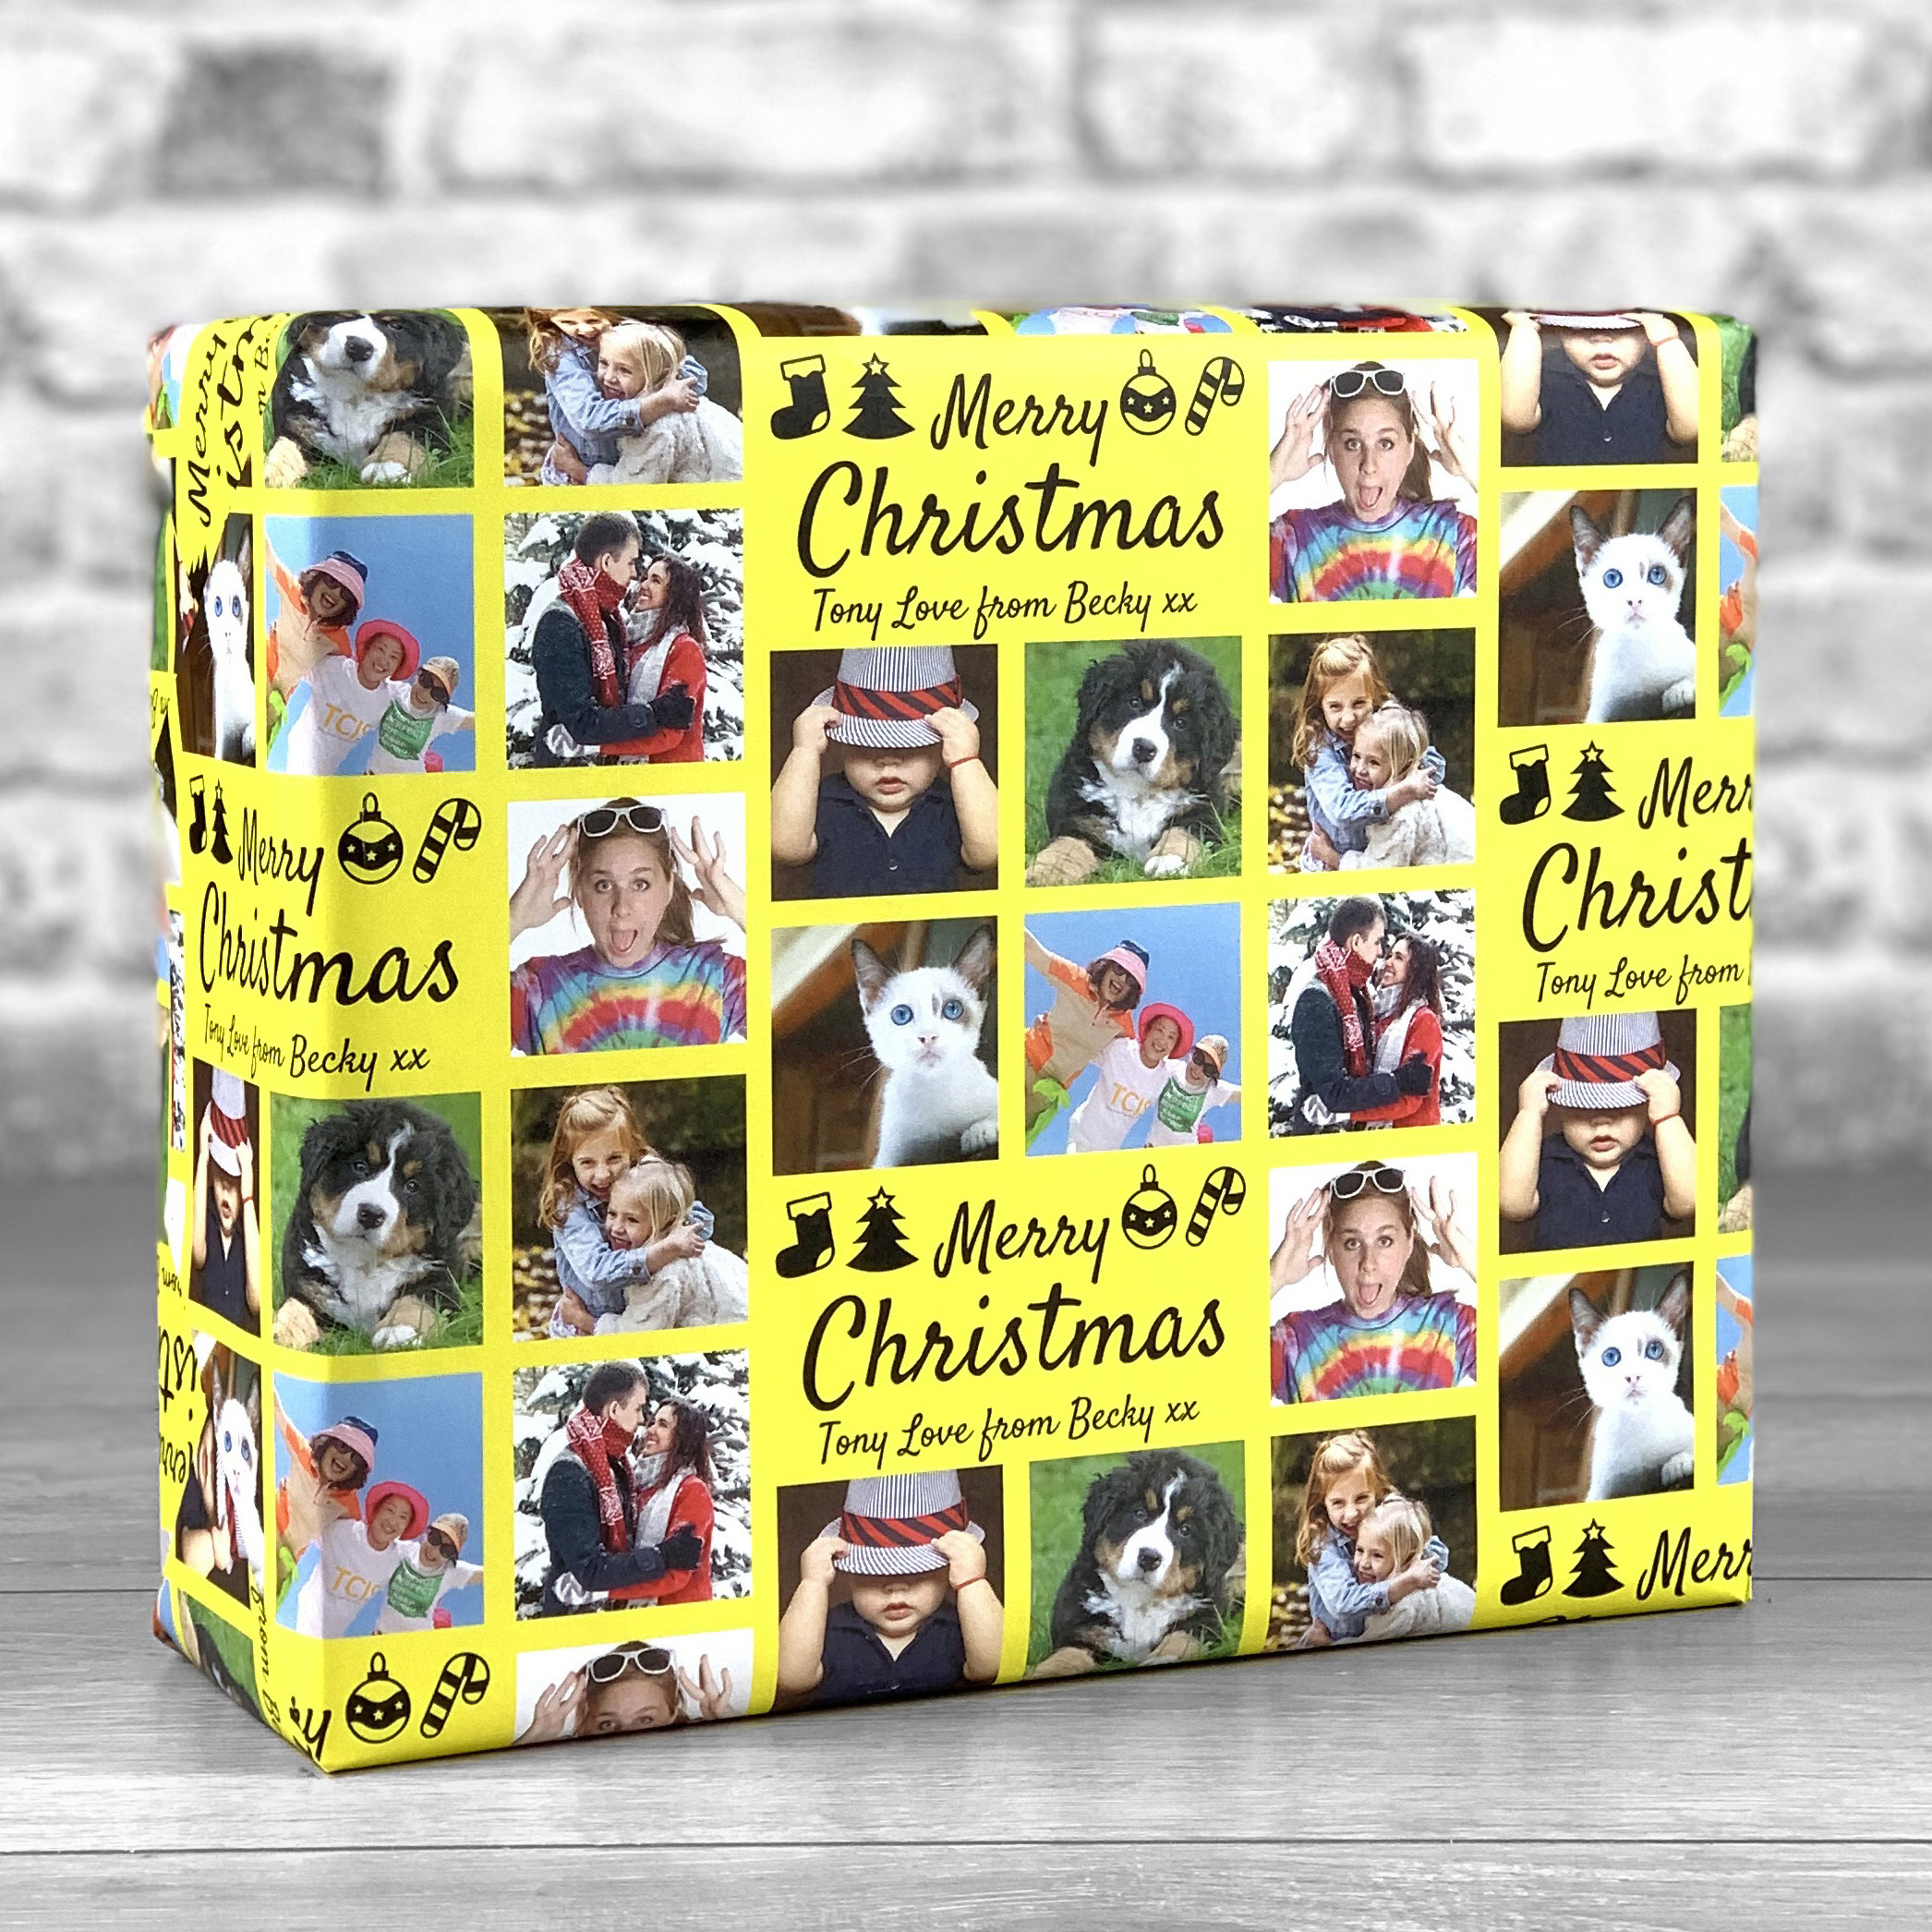 Merry Christmas Yellow Gift Wrap with Personalised Message and 7 Photo Uploads